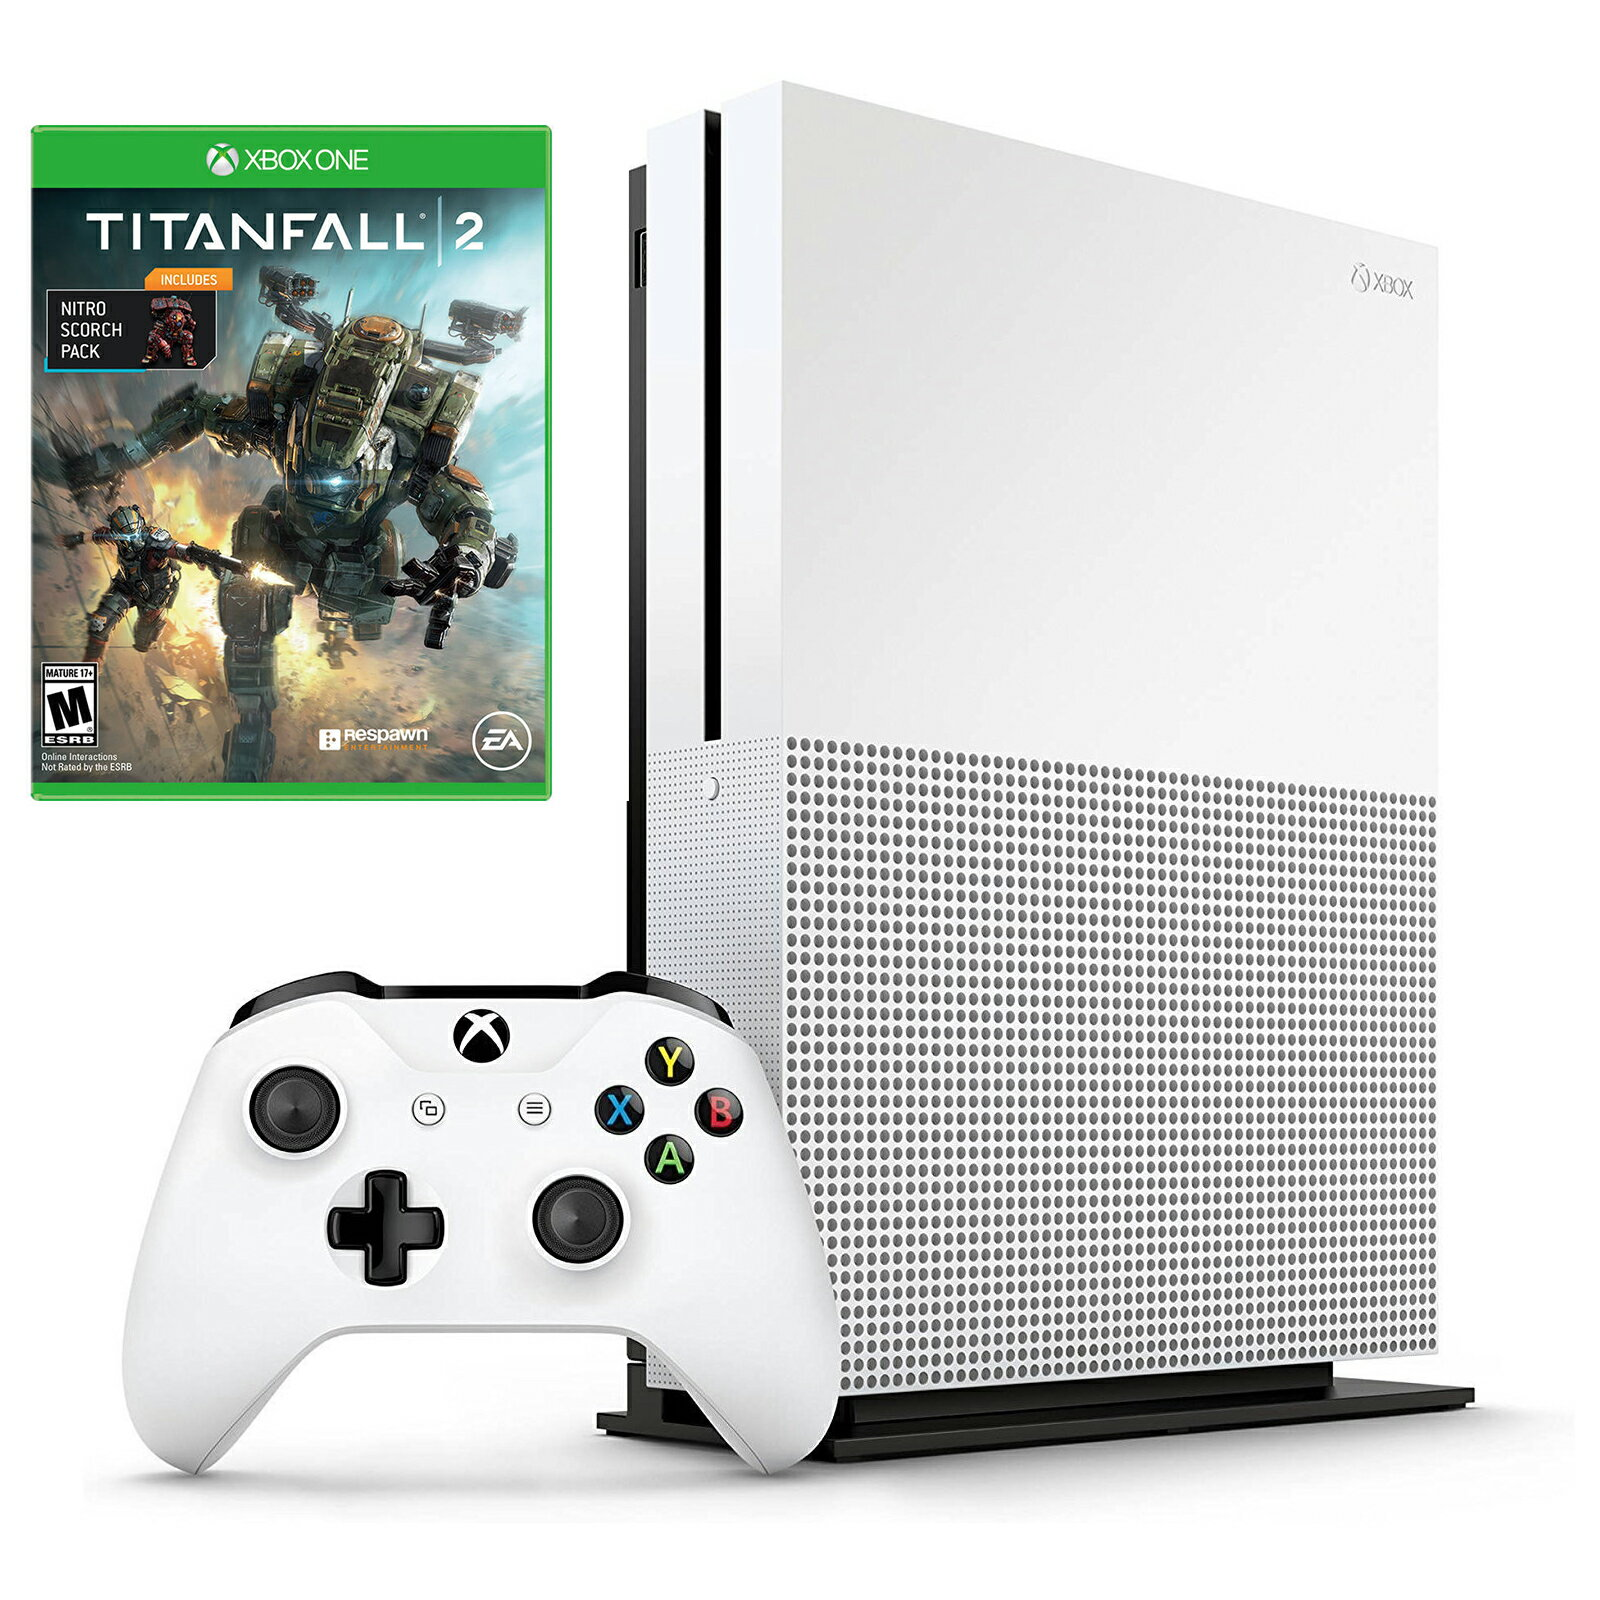 Microsoft Xbox One S 1TB Console with Titanfall 2 with Nitro Scorch Pack